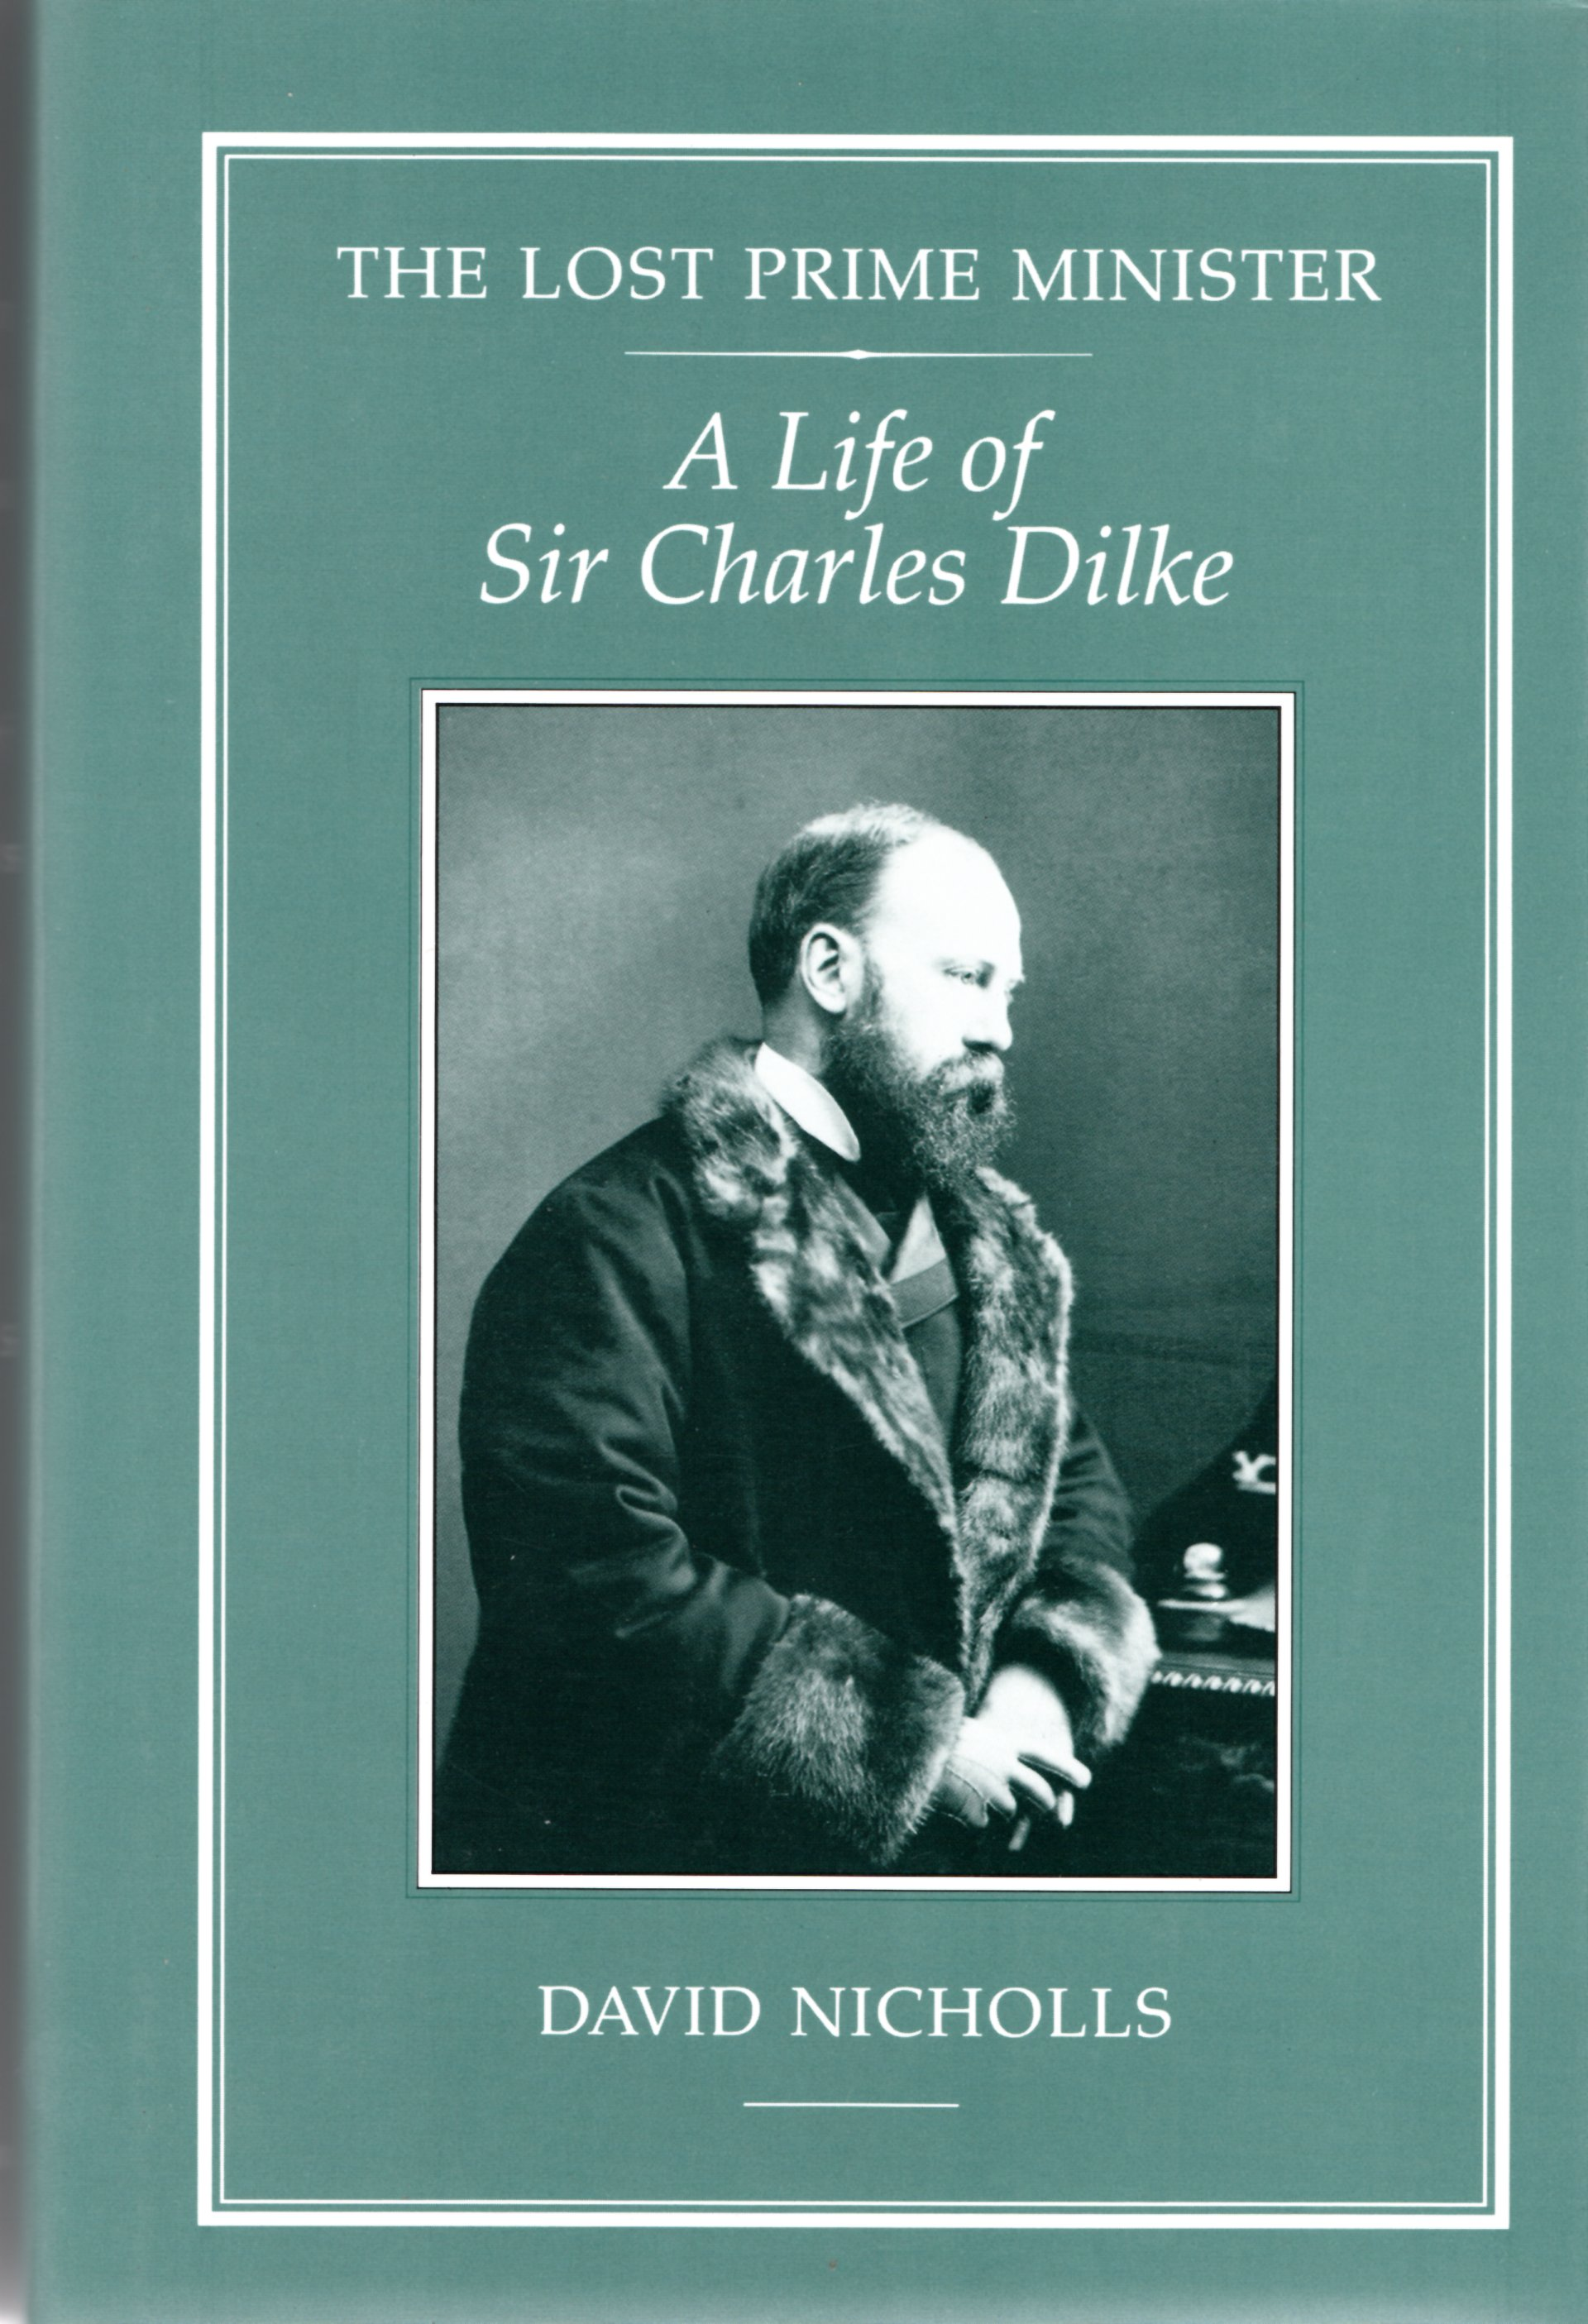 Image for The Lost Prime Minister: Life of Sir Charles Dilke